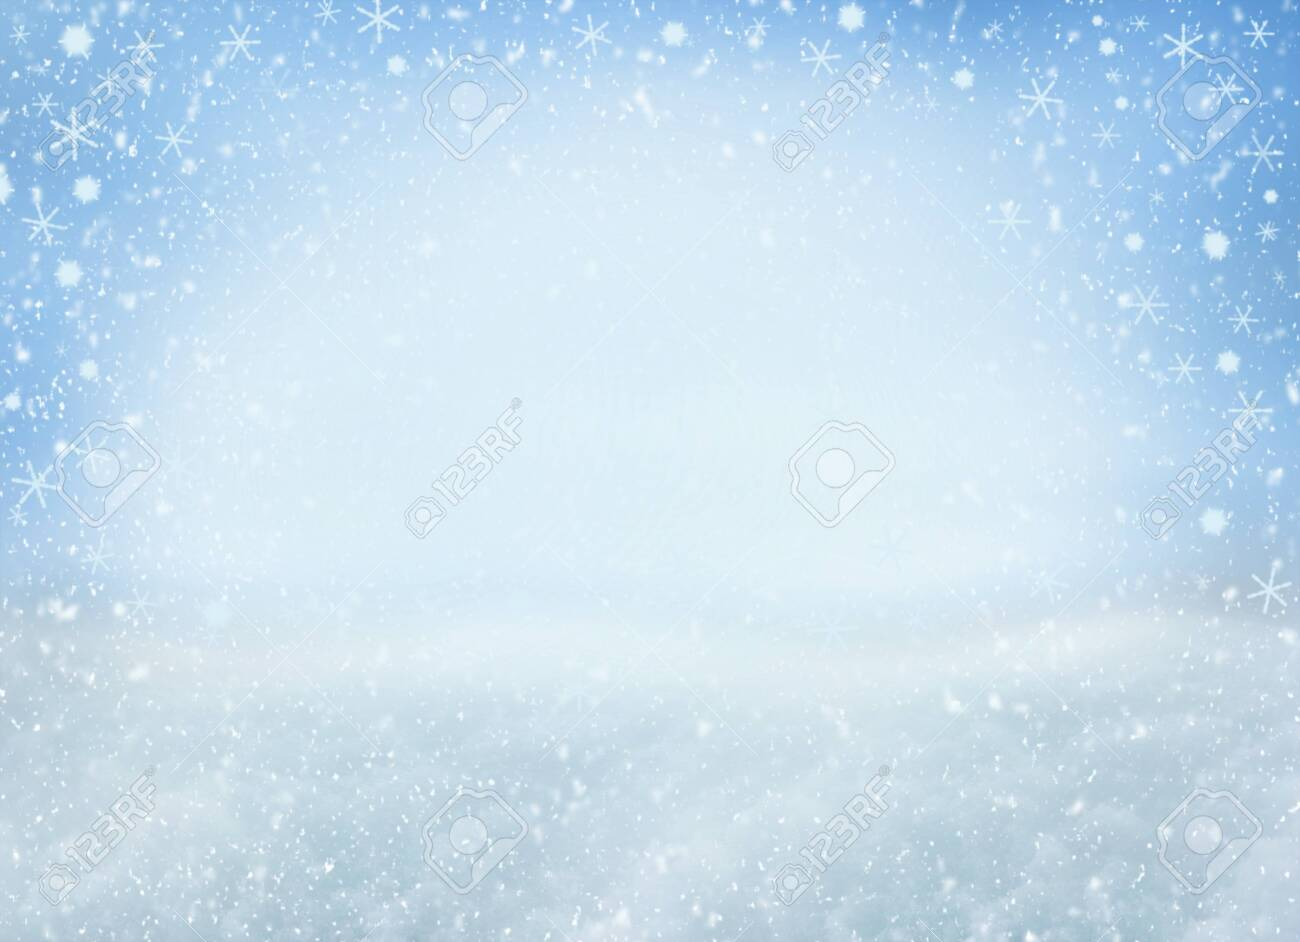 Winter Christmas background with falling snowflakes. Background for design with copy space - 131189083